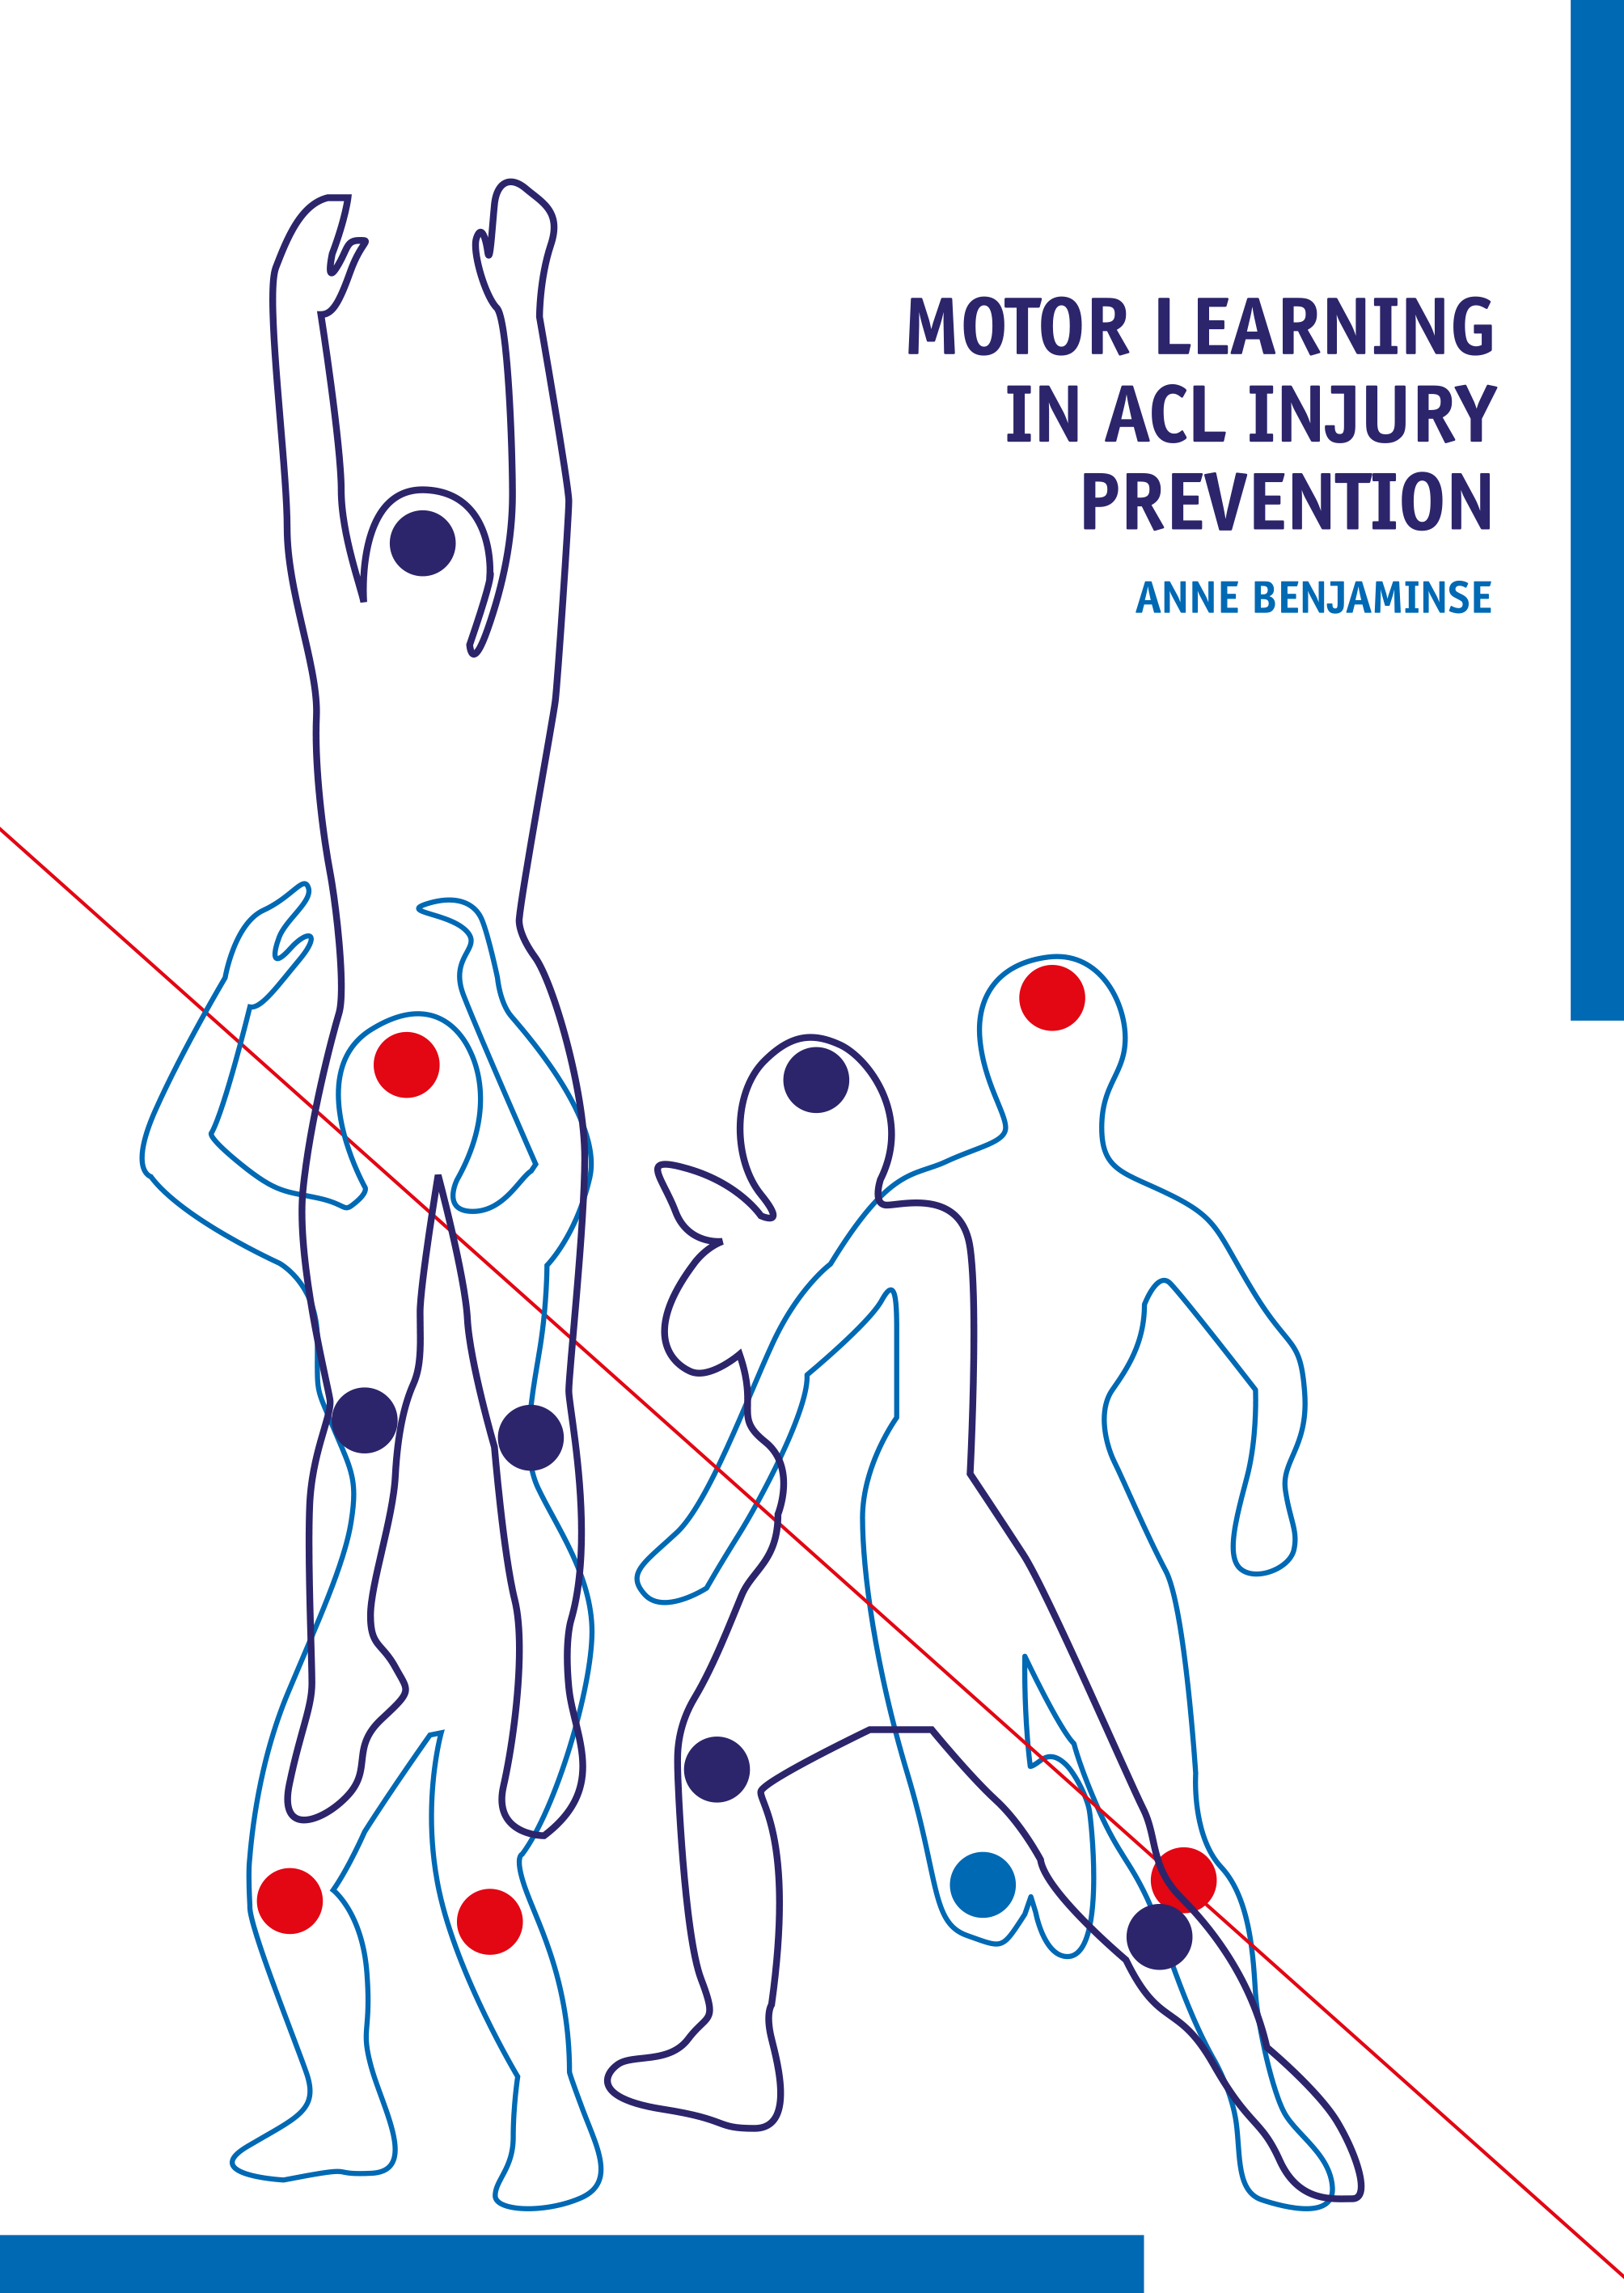 Motor Learning in ACL Injury Prevention